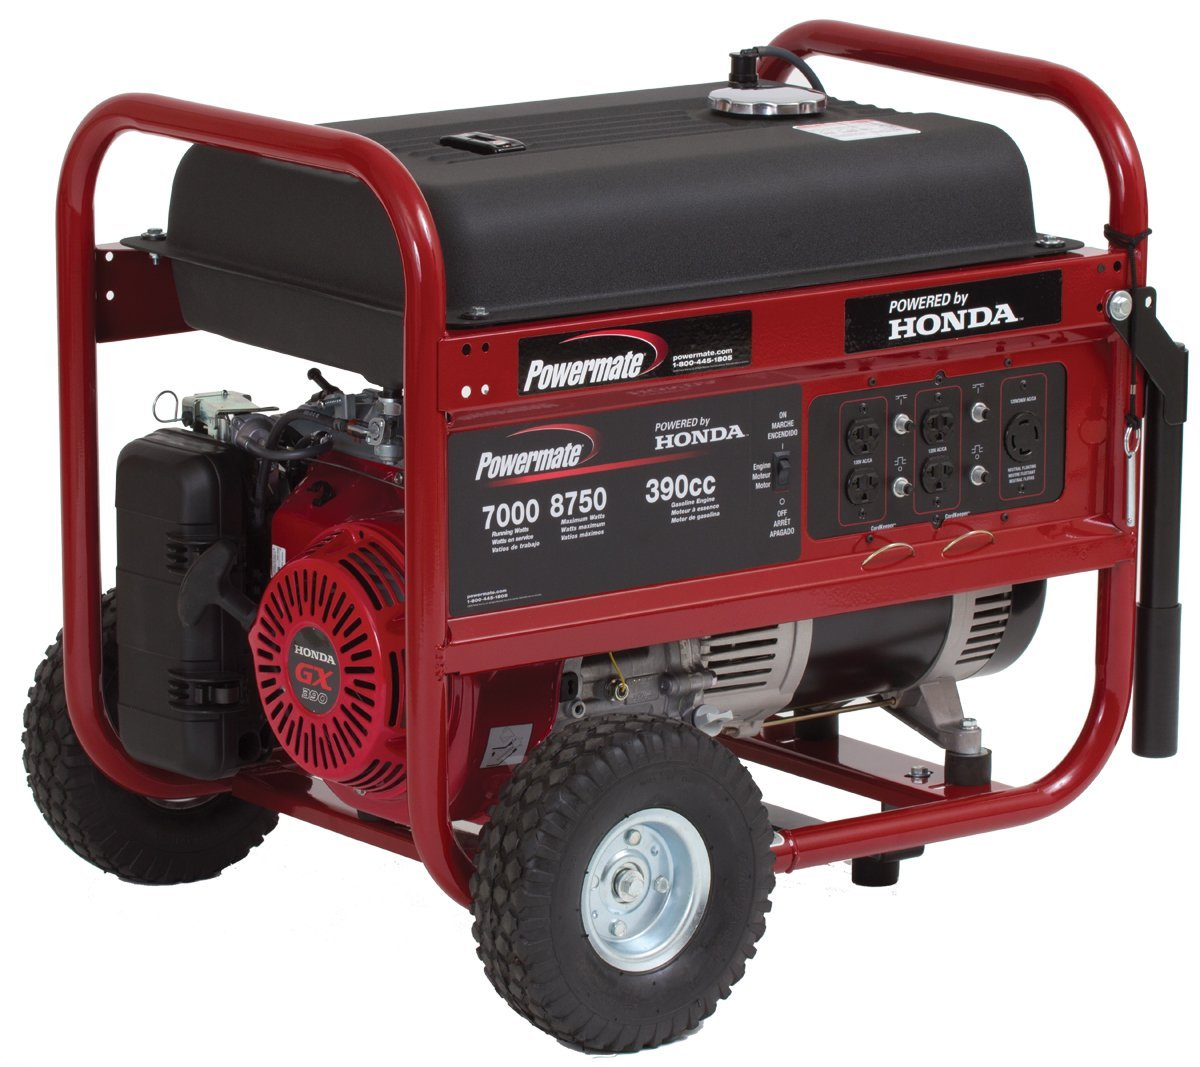 home depot portable natural gas generators with Powermate Pm049700004 8750 Watt 389cc on For Your Safety Never Use A Gas Powered Portable Generator Indoors in addition 301462813 moreover How To Remove Bathroom Faucet Handle in addition Decorated Model Homes Tours in addition 172010.